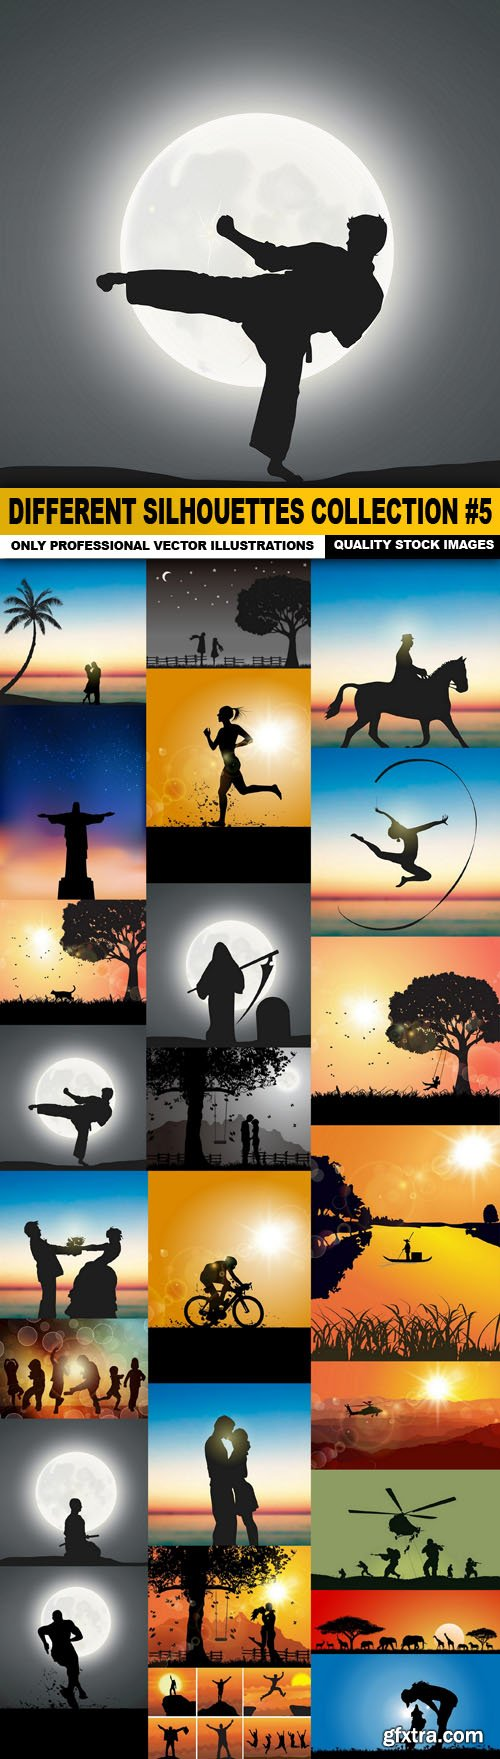 Different Silhouettes Collection #5 - 25 Vector